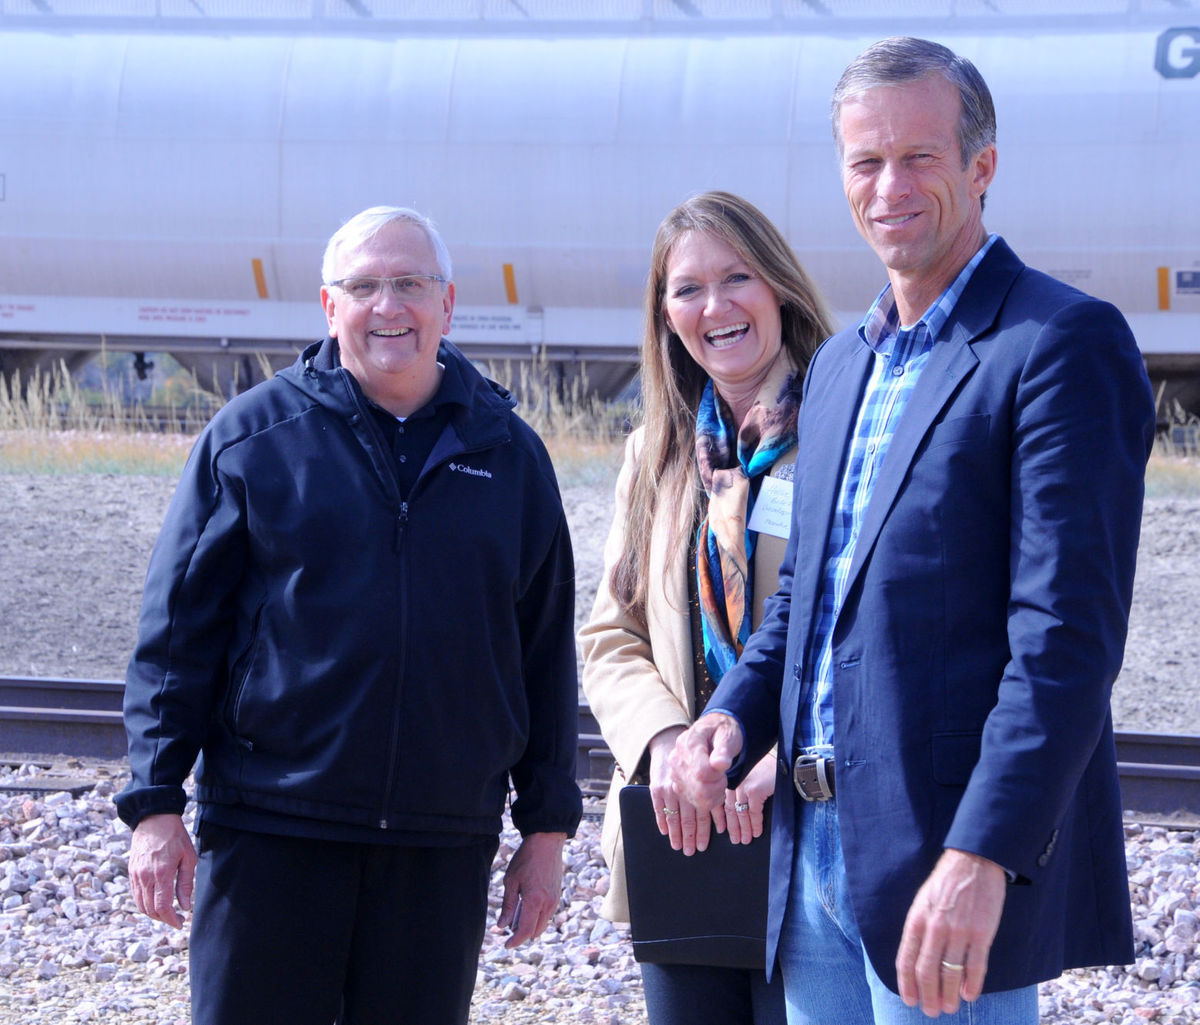 Photo credit: Milo Dailey, Butte County Post. Chamber Director Gary Wood and Belle Fourche EDC Executive Director Hollie Stalder stand with Senator John Thune at the Industrial Rail Park ribbon cutting.